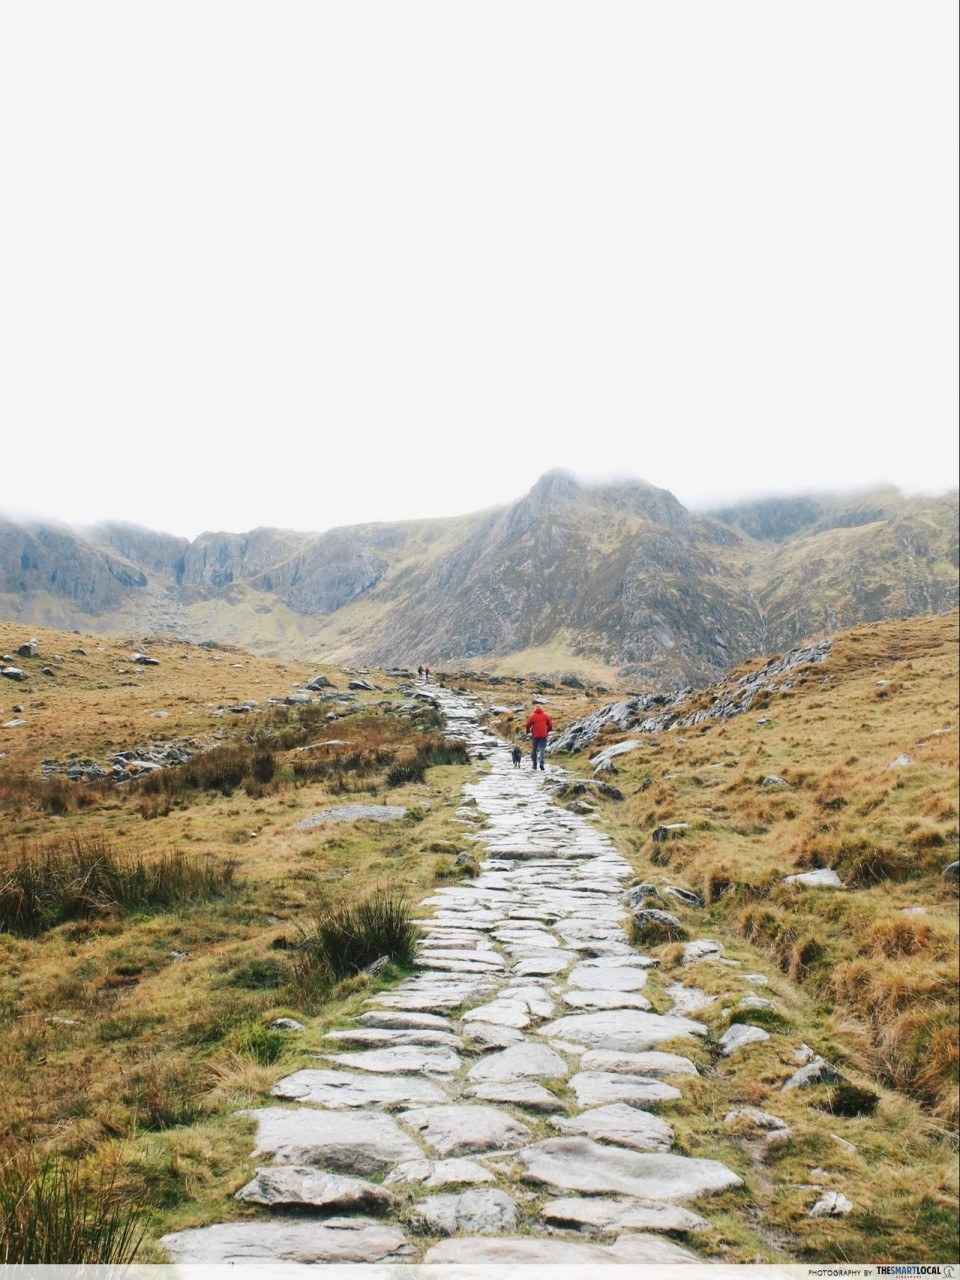 Hiking in Europe - Stone path